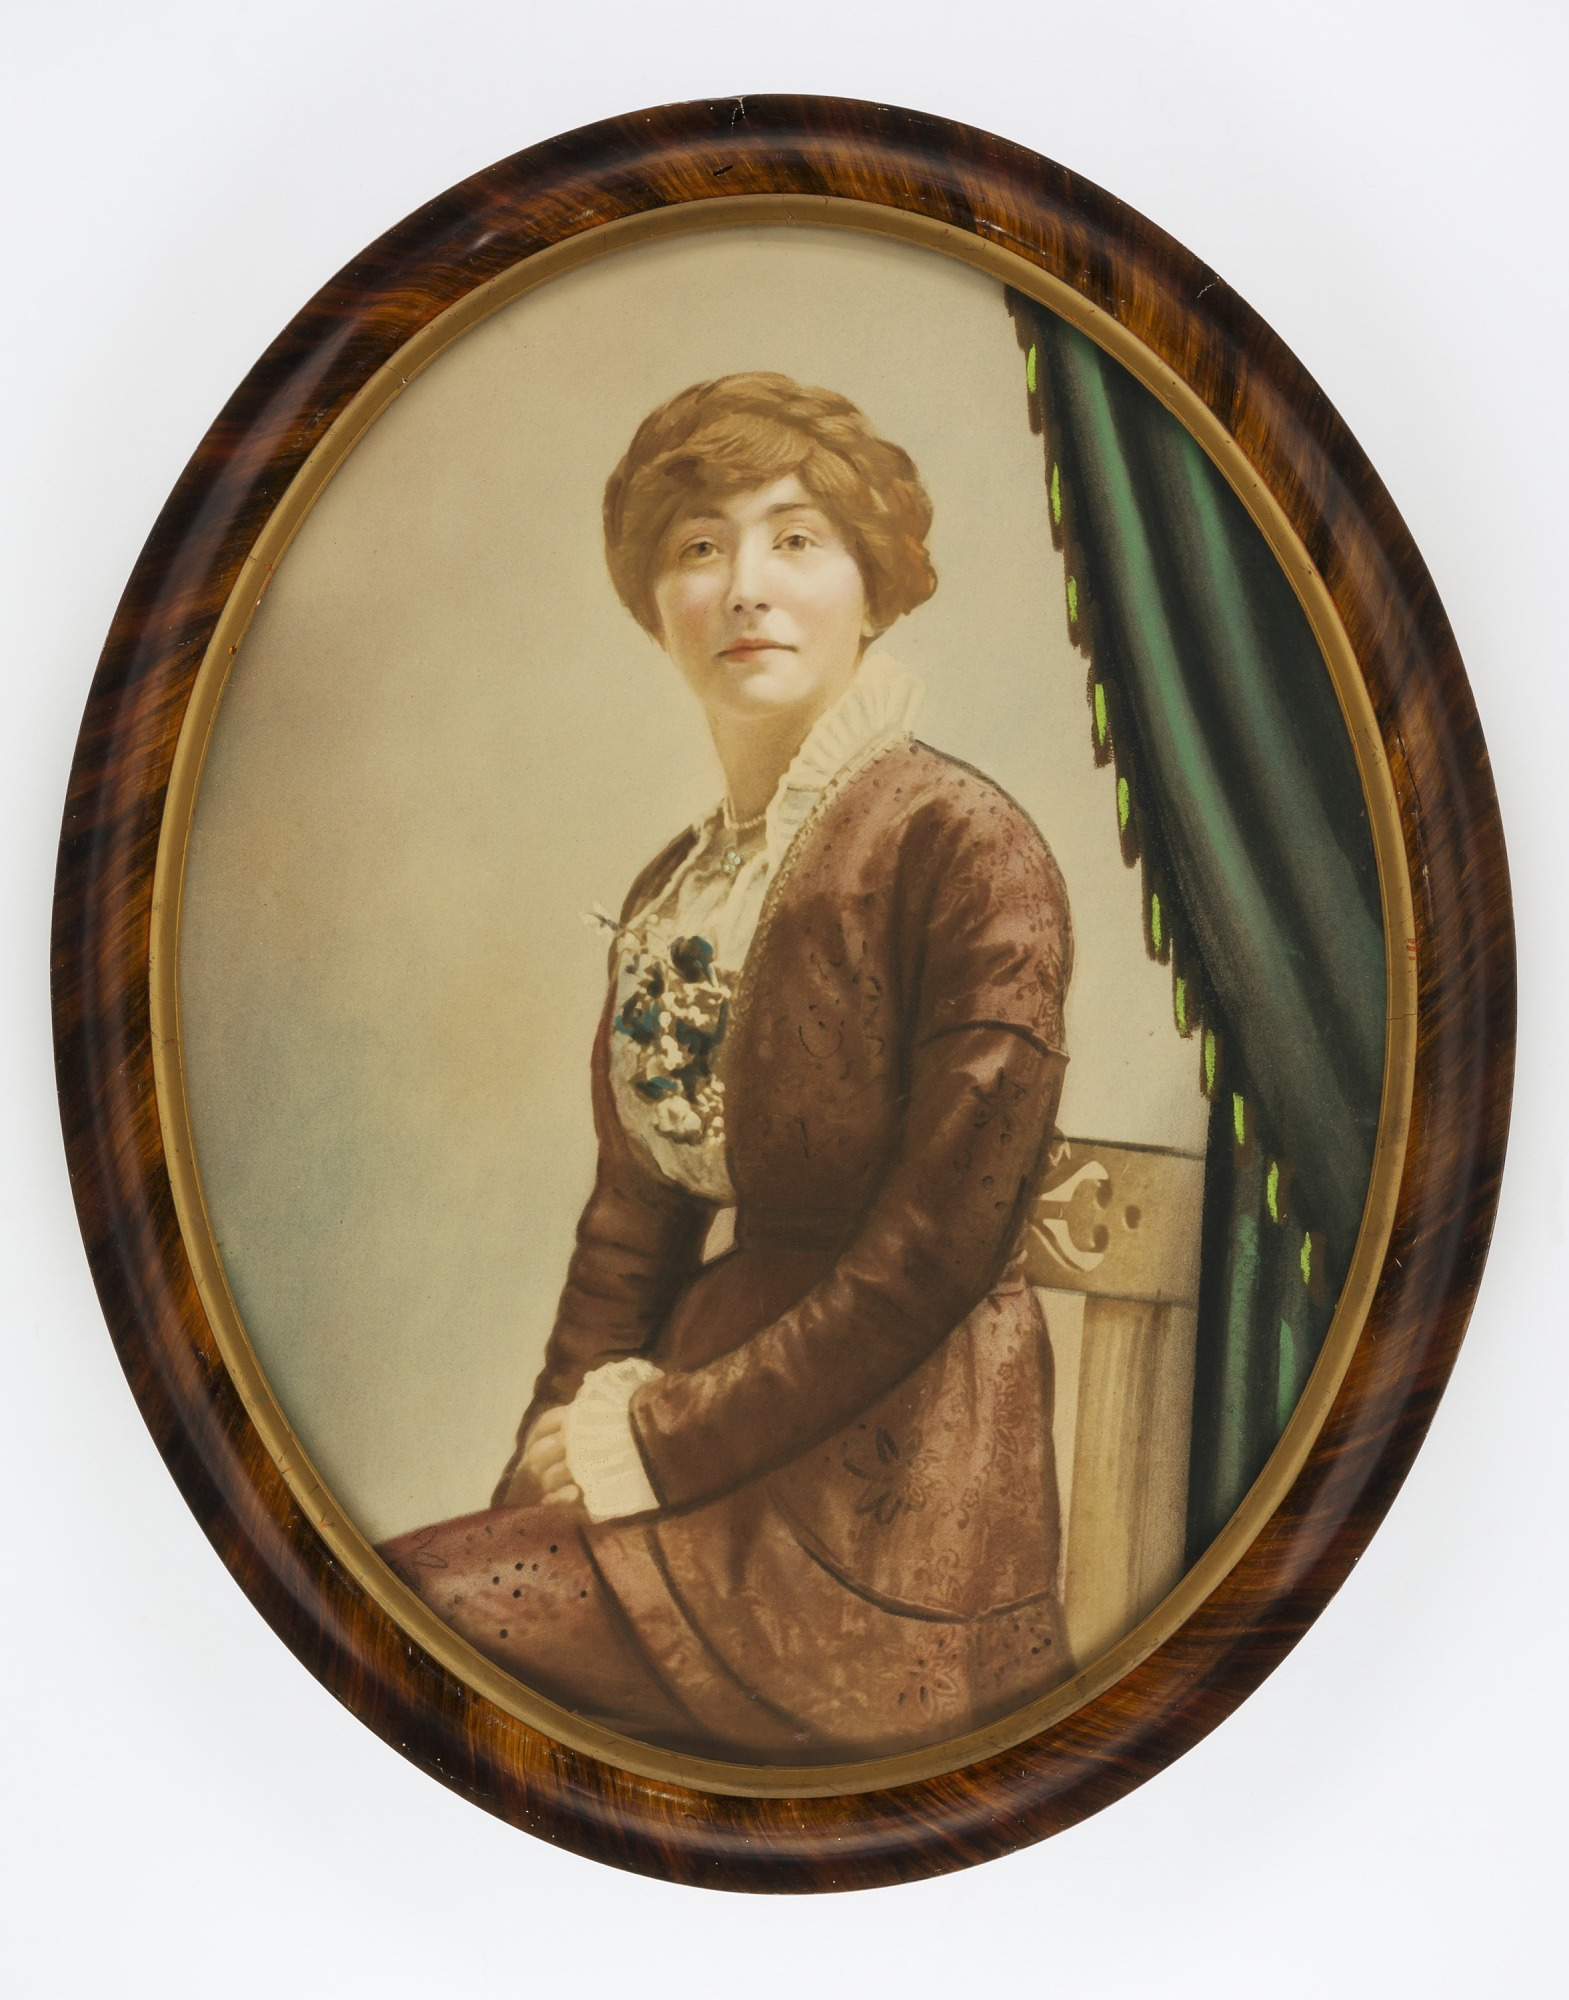 Woman in Brown Dress with